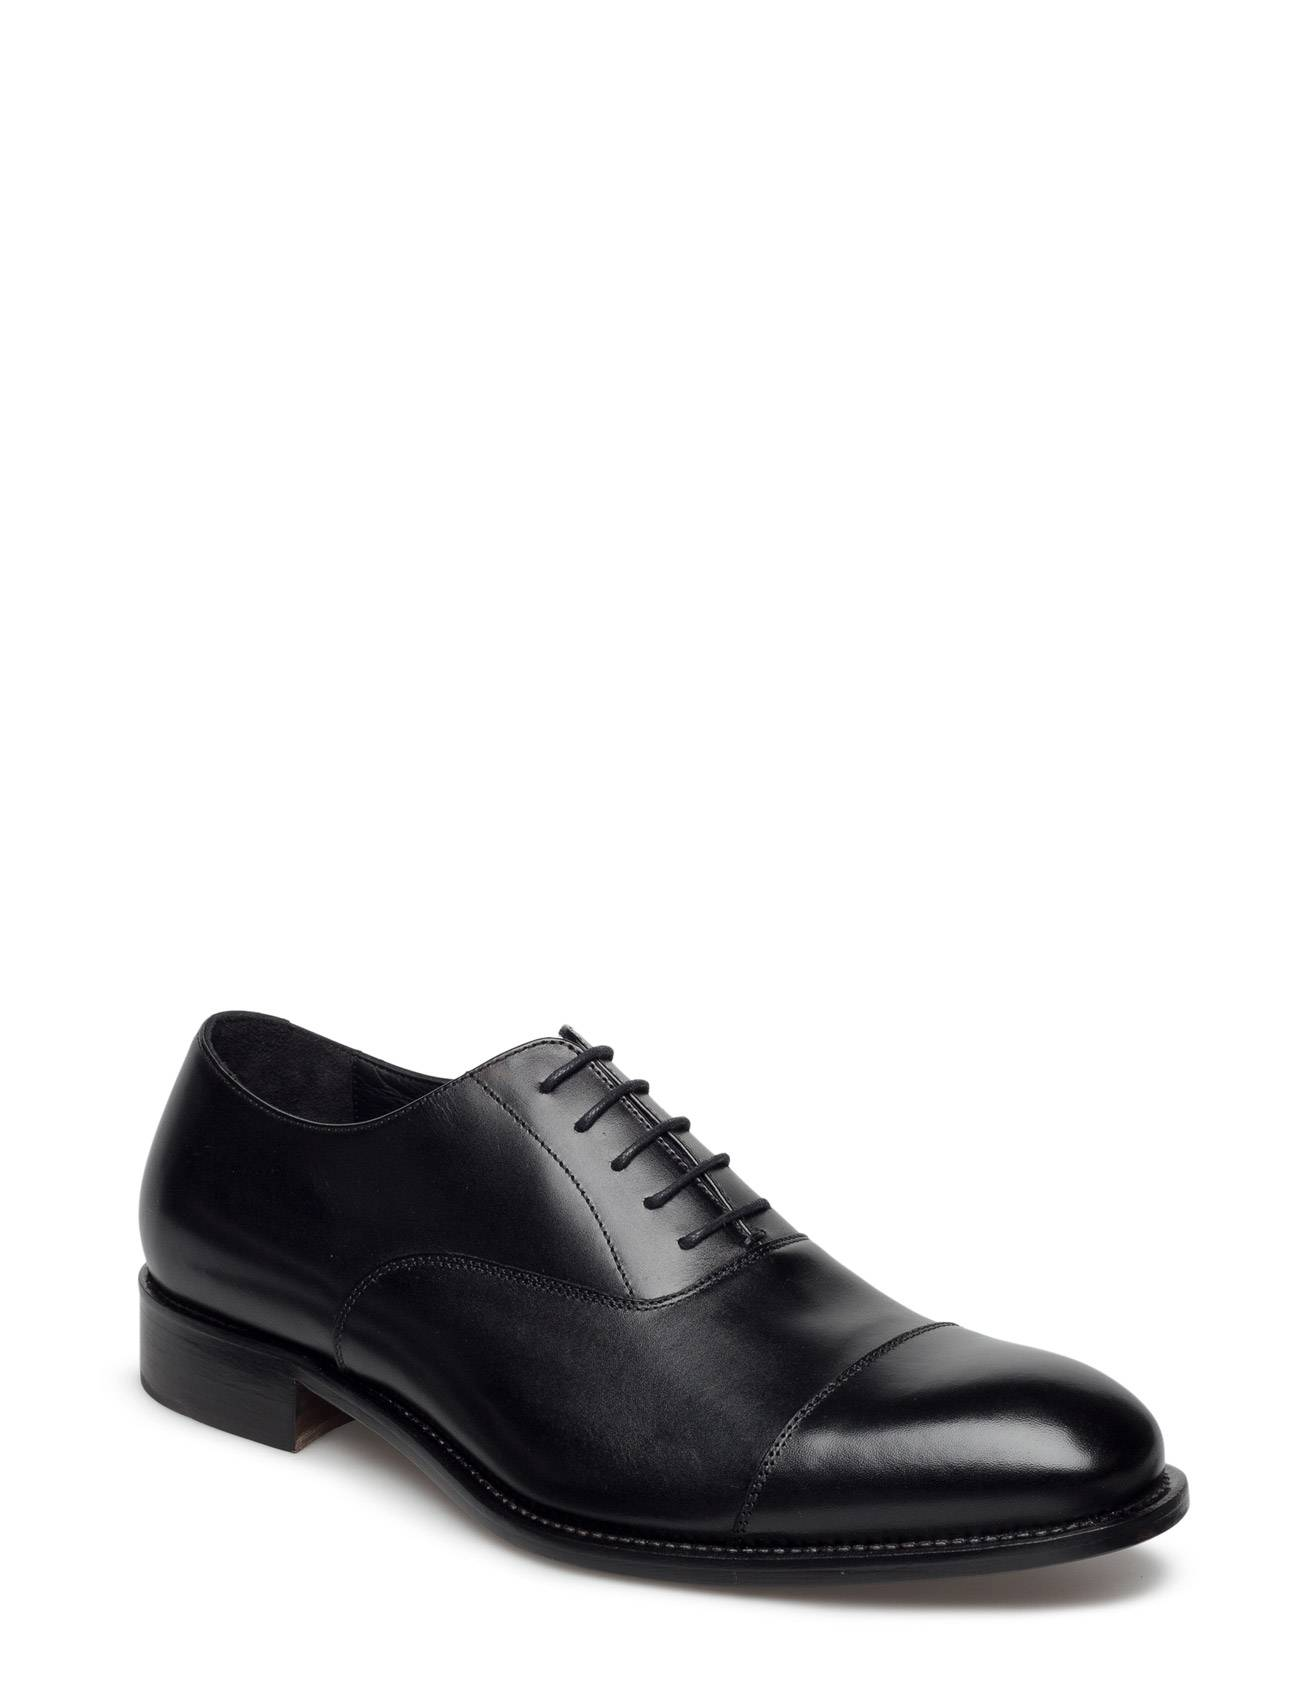 J. Lindeberg Hopper Cap Toe Port Calf